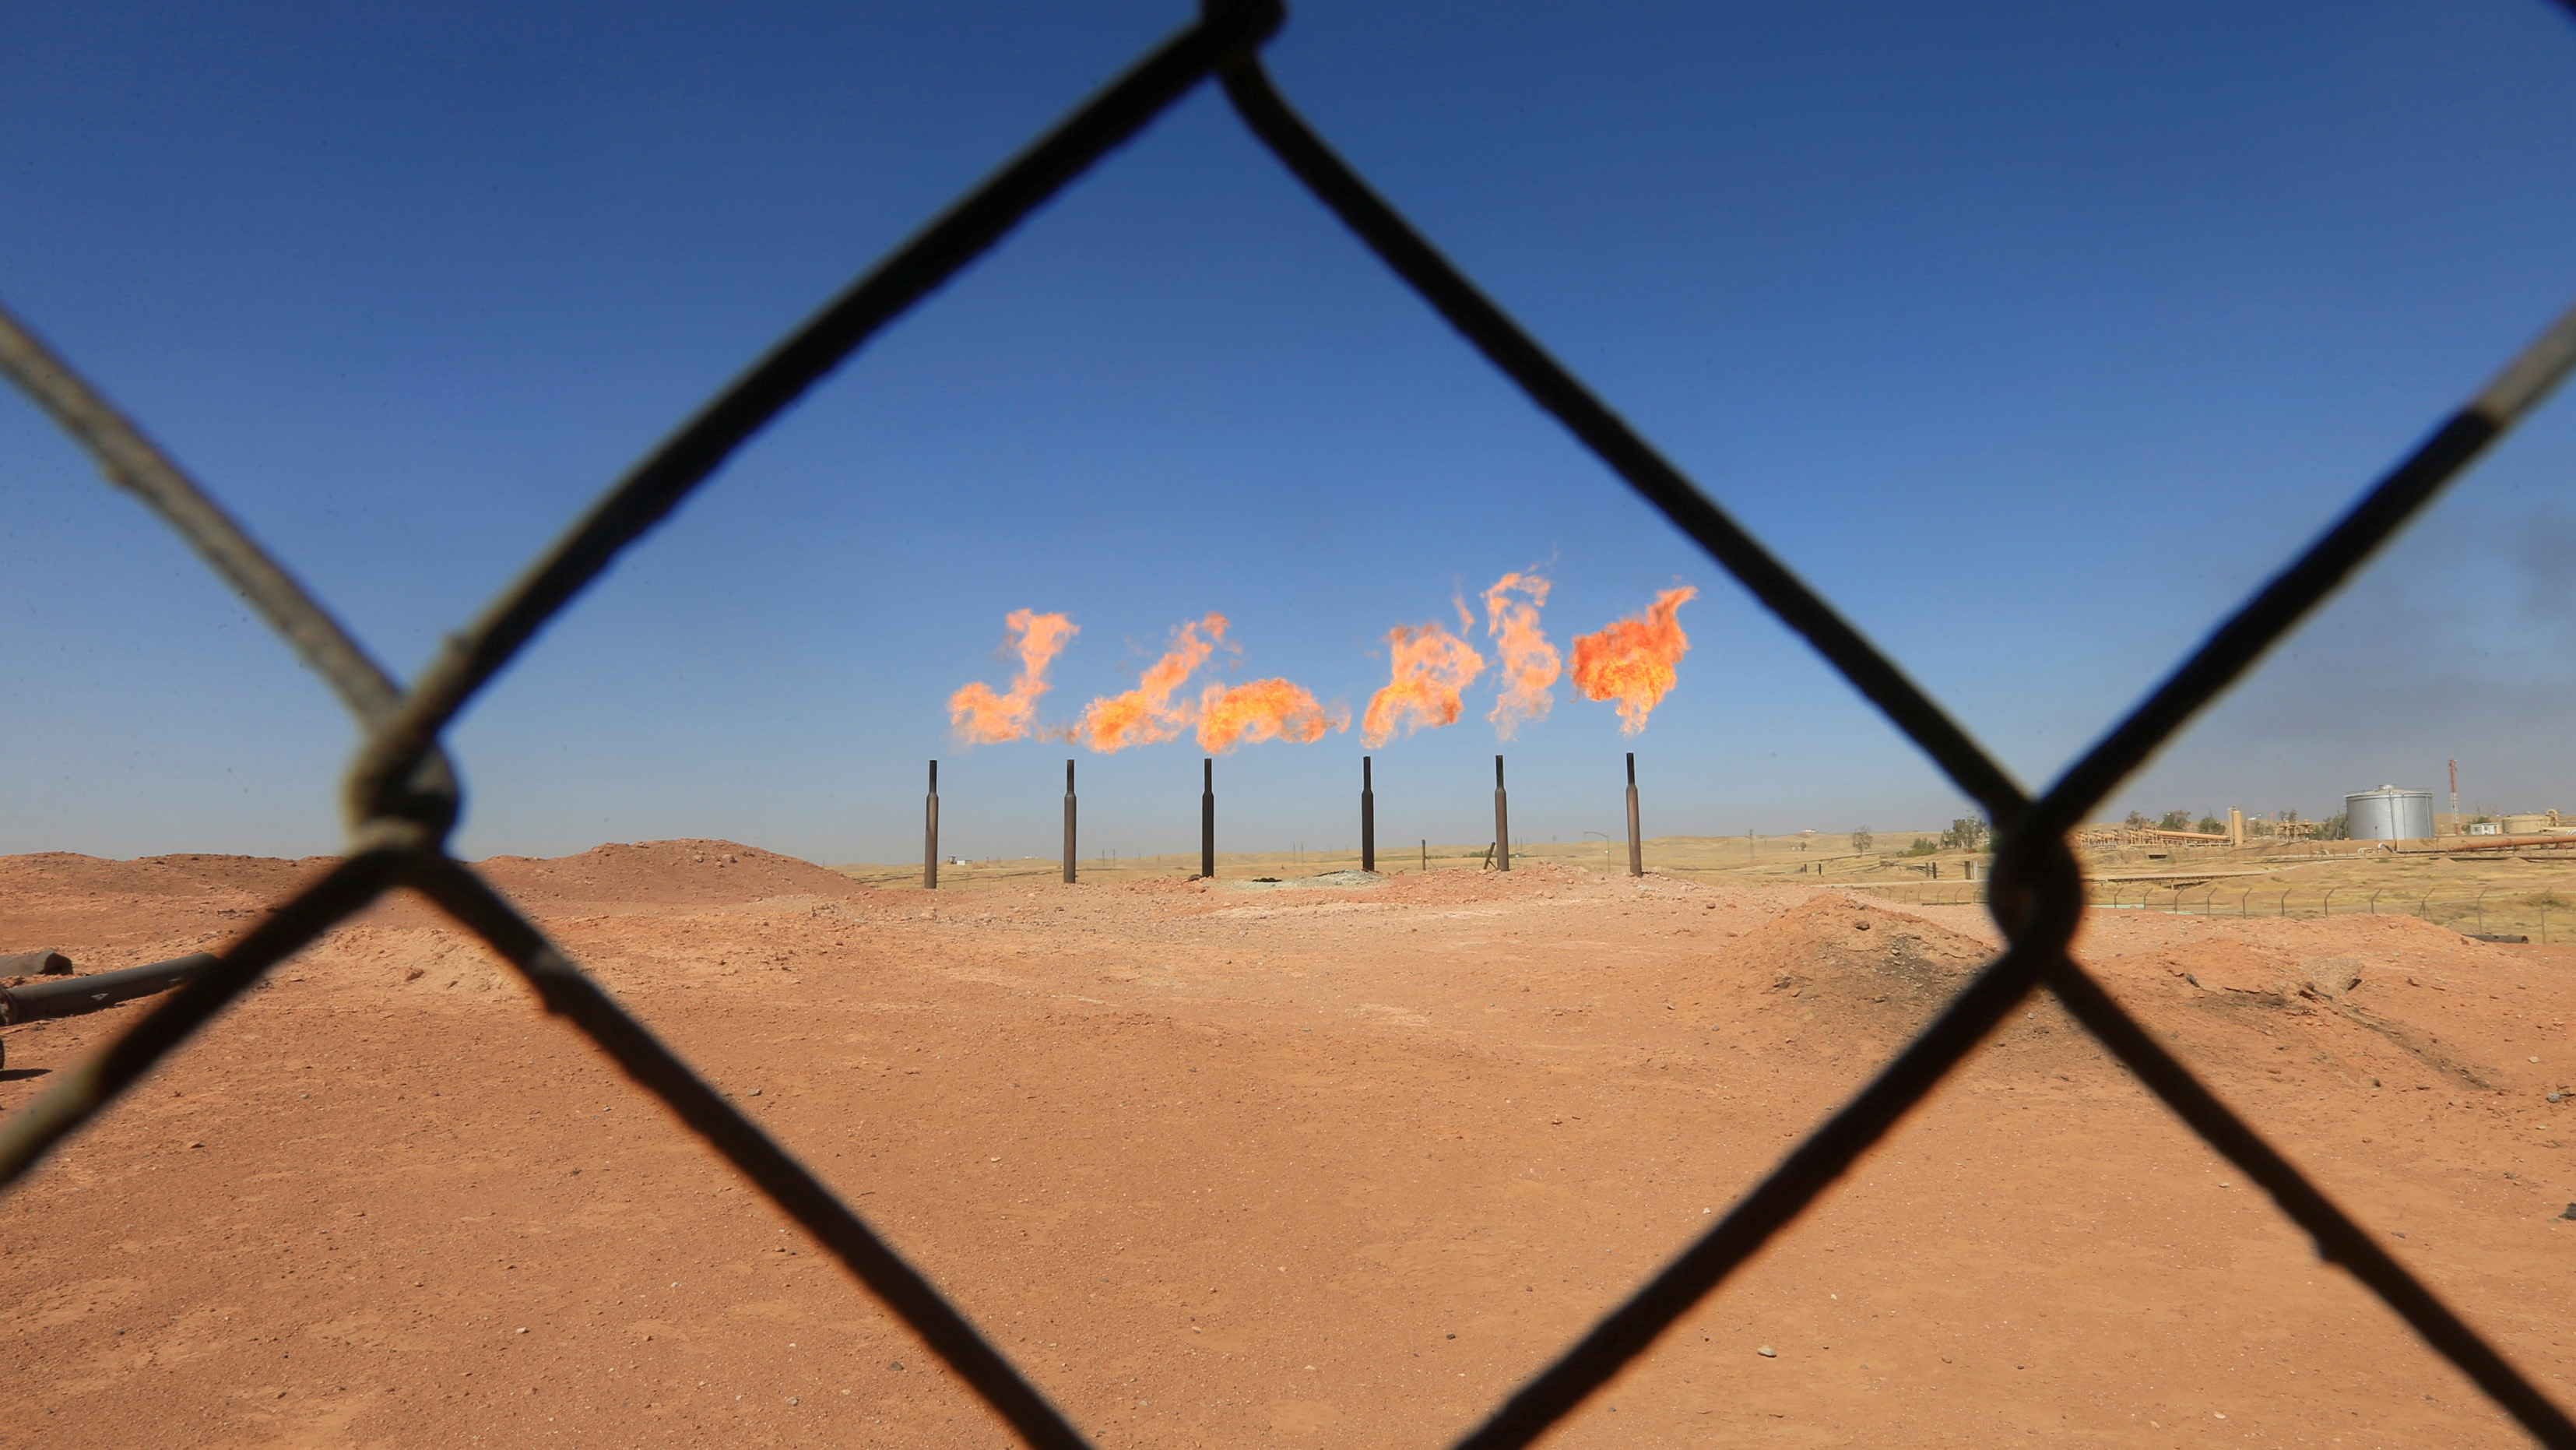 Flames emerge from flare stacks at the oil fields in Dibis area on the outskirts of Kirkuk, Iraq October 17, 2017. REUTERS/Alaa Al-Marjani - RC1339335830